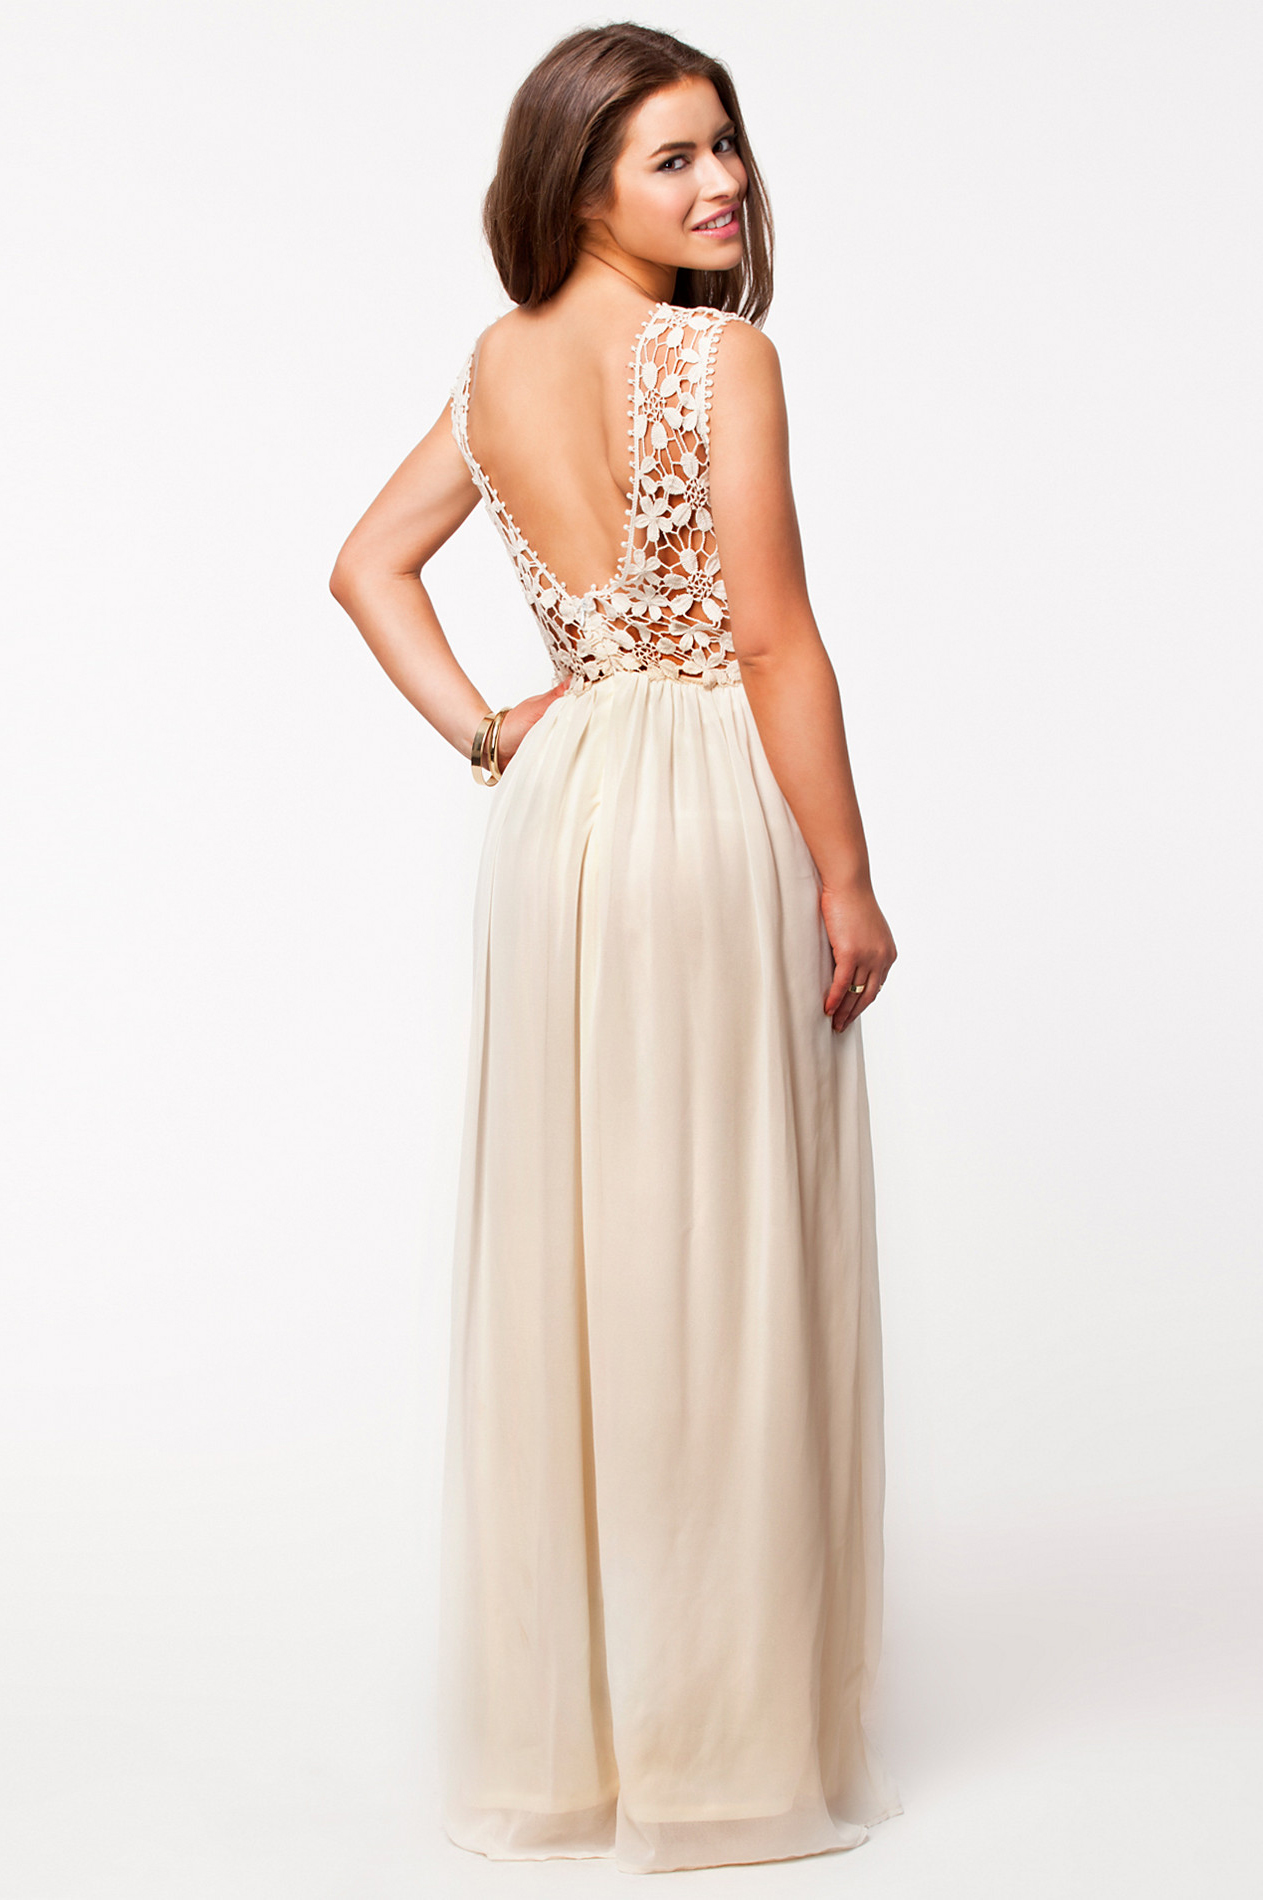 Backless Dress 12